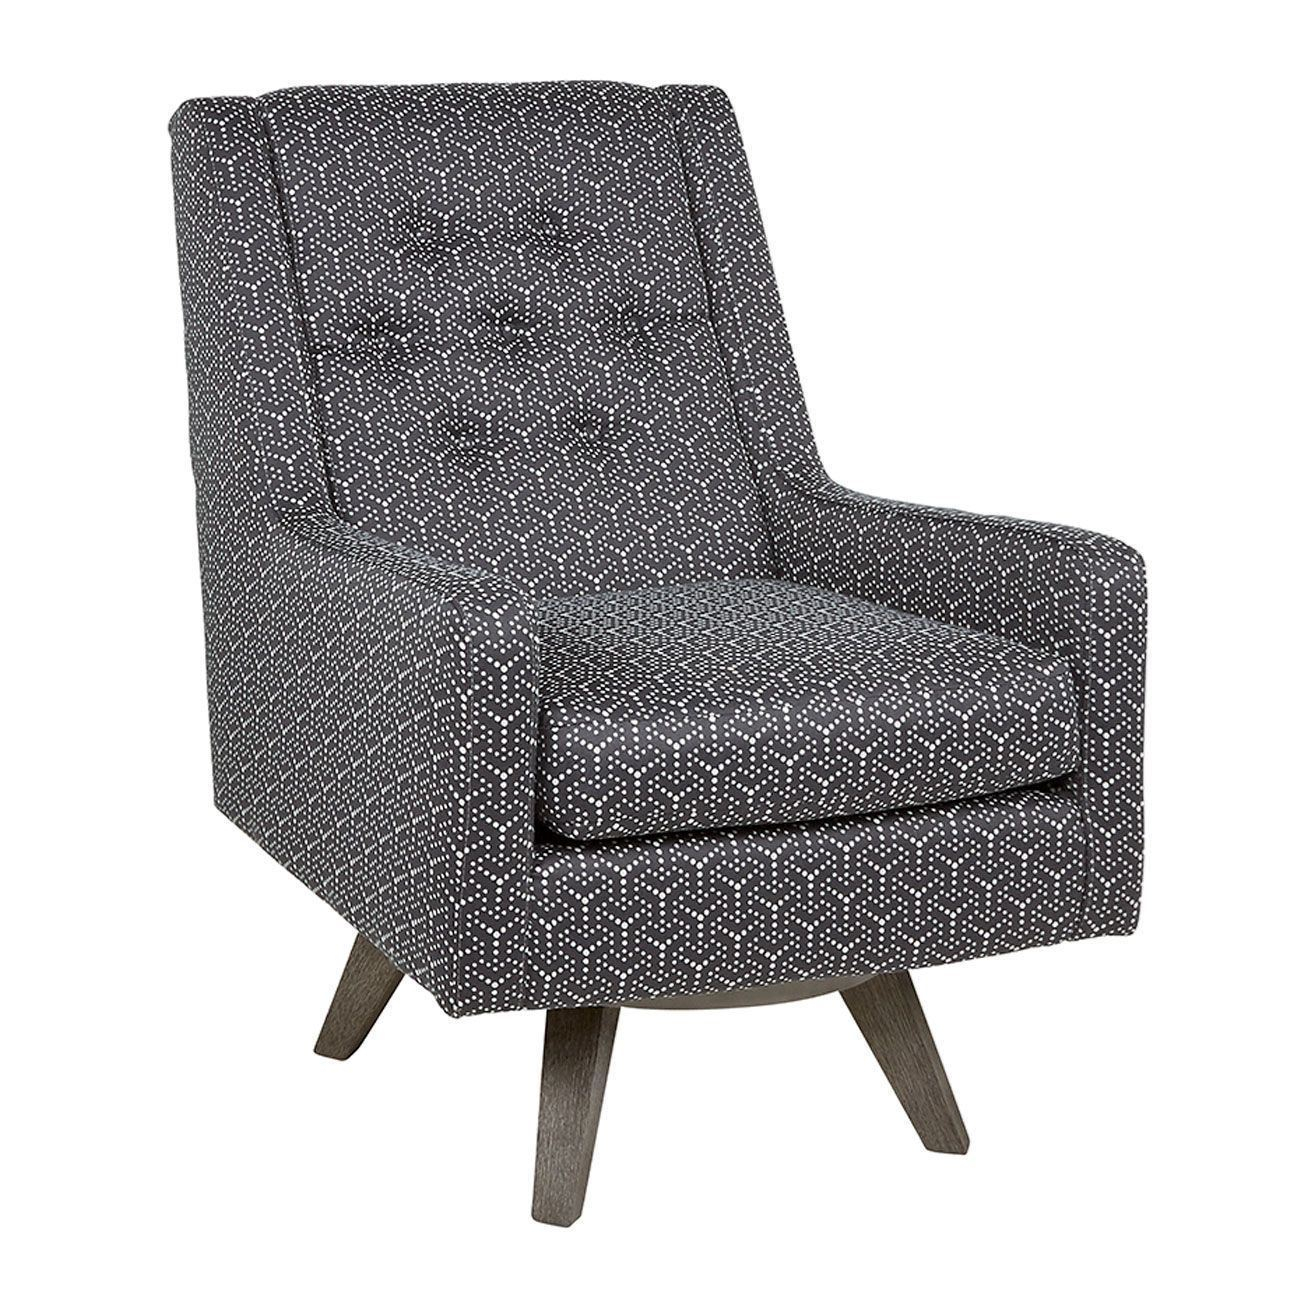 Kale Charcoal Swivel Chair – Woodstock Furniture & Mattress For Charcoal Swivel Chairs (Image 13 of 20)